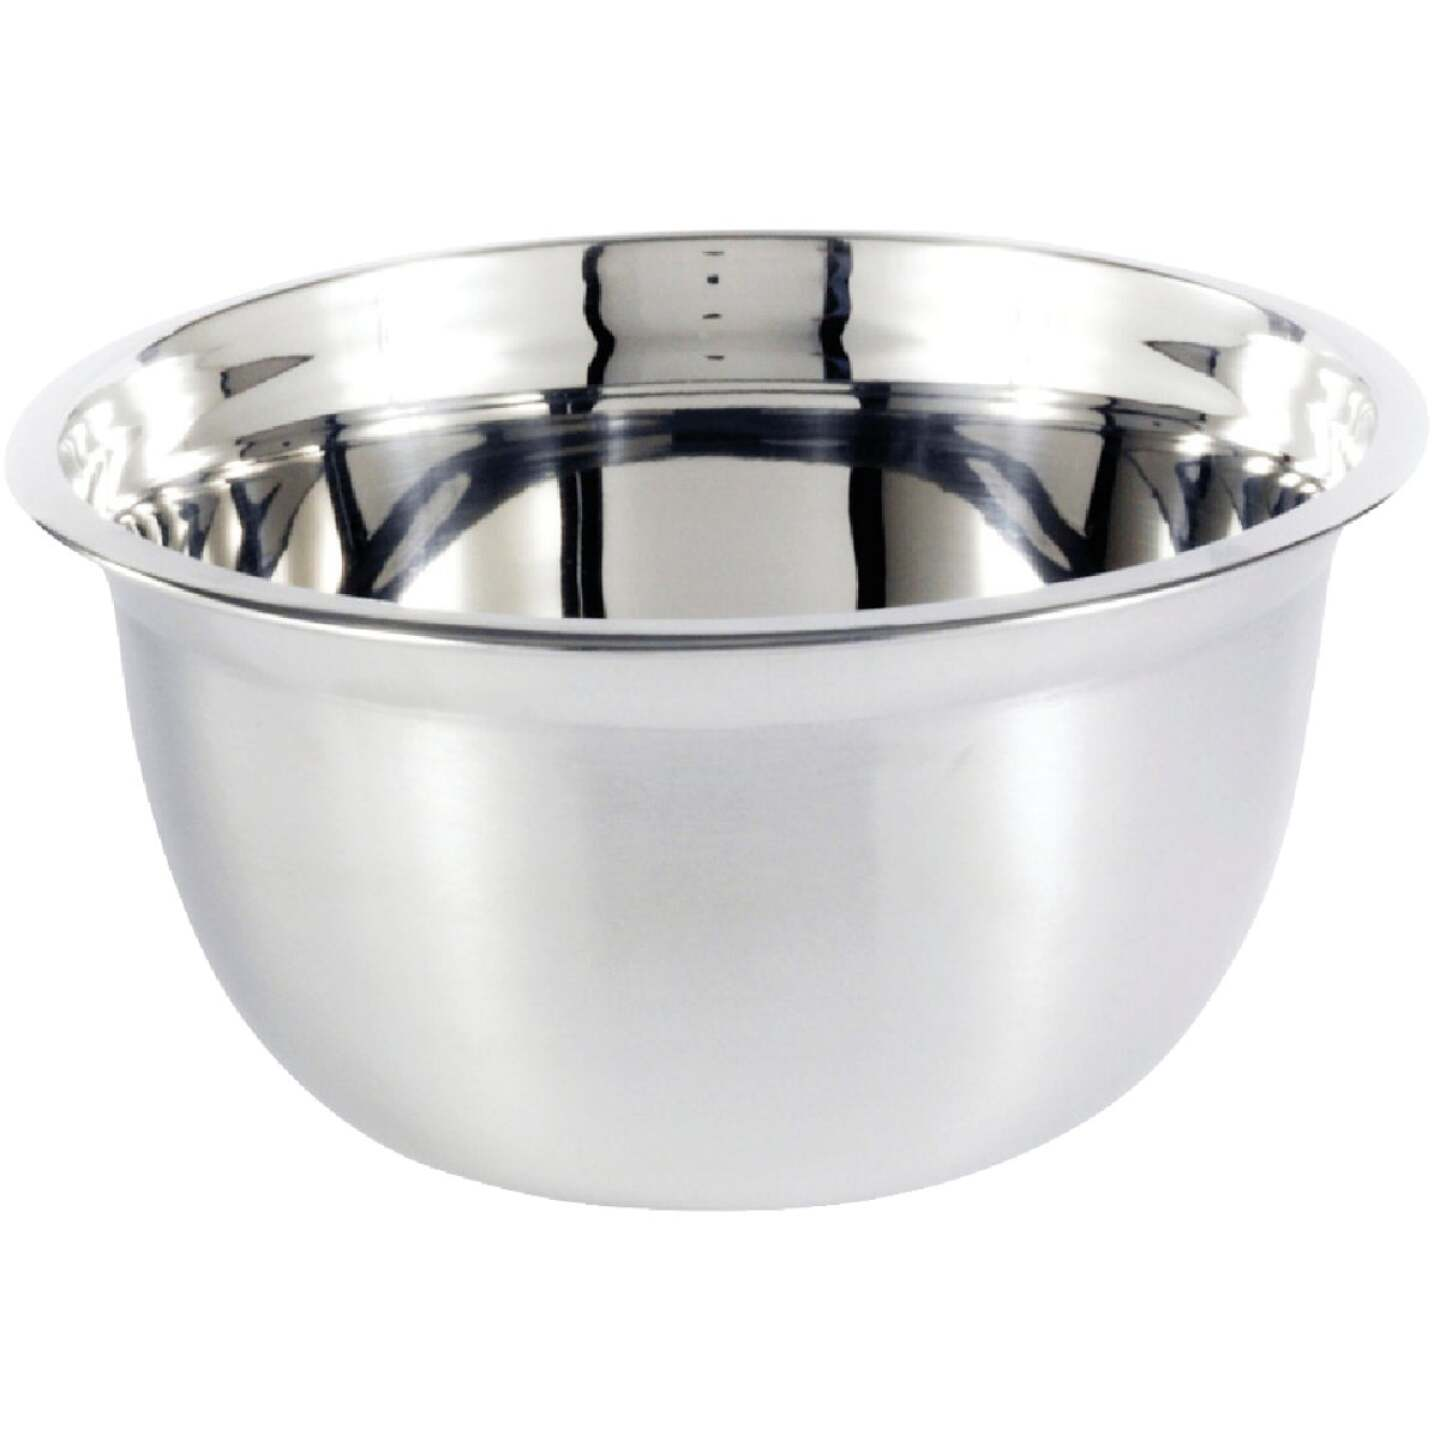 McSunley 3 Qt. Stainless Steel Mixing Bowl Image 1